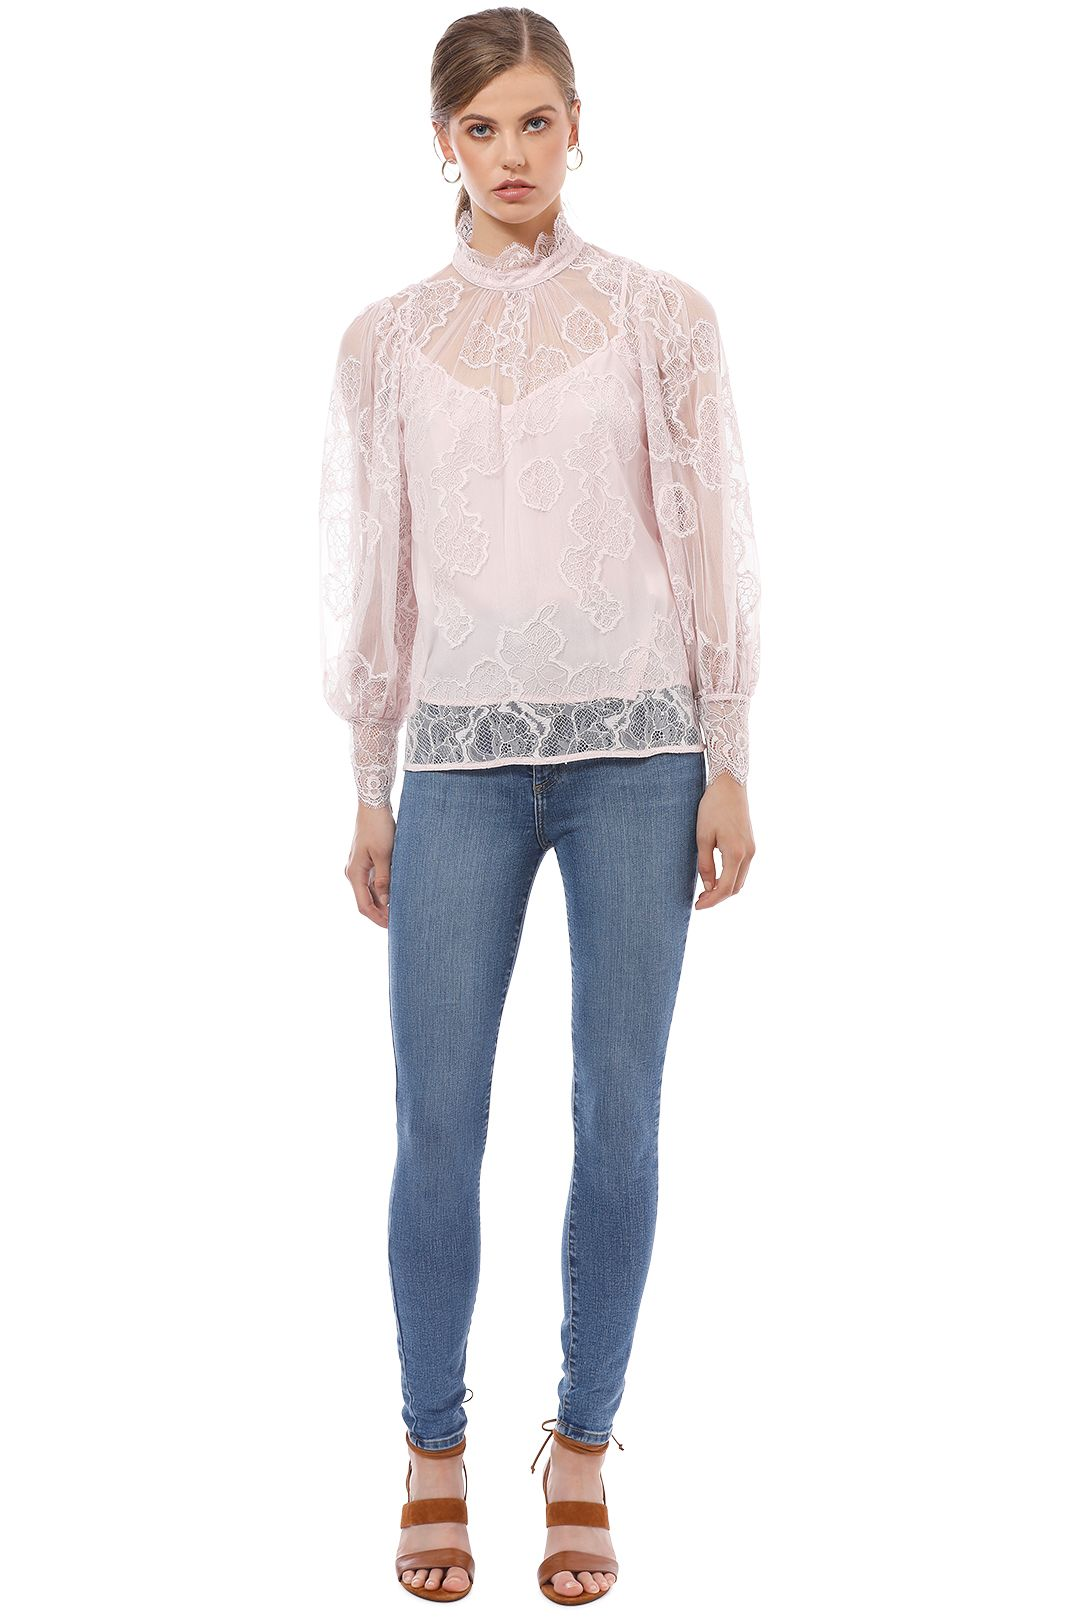 Witchery - Lace Balloon Sleeve Blouse - Pink - Front